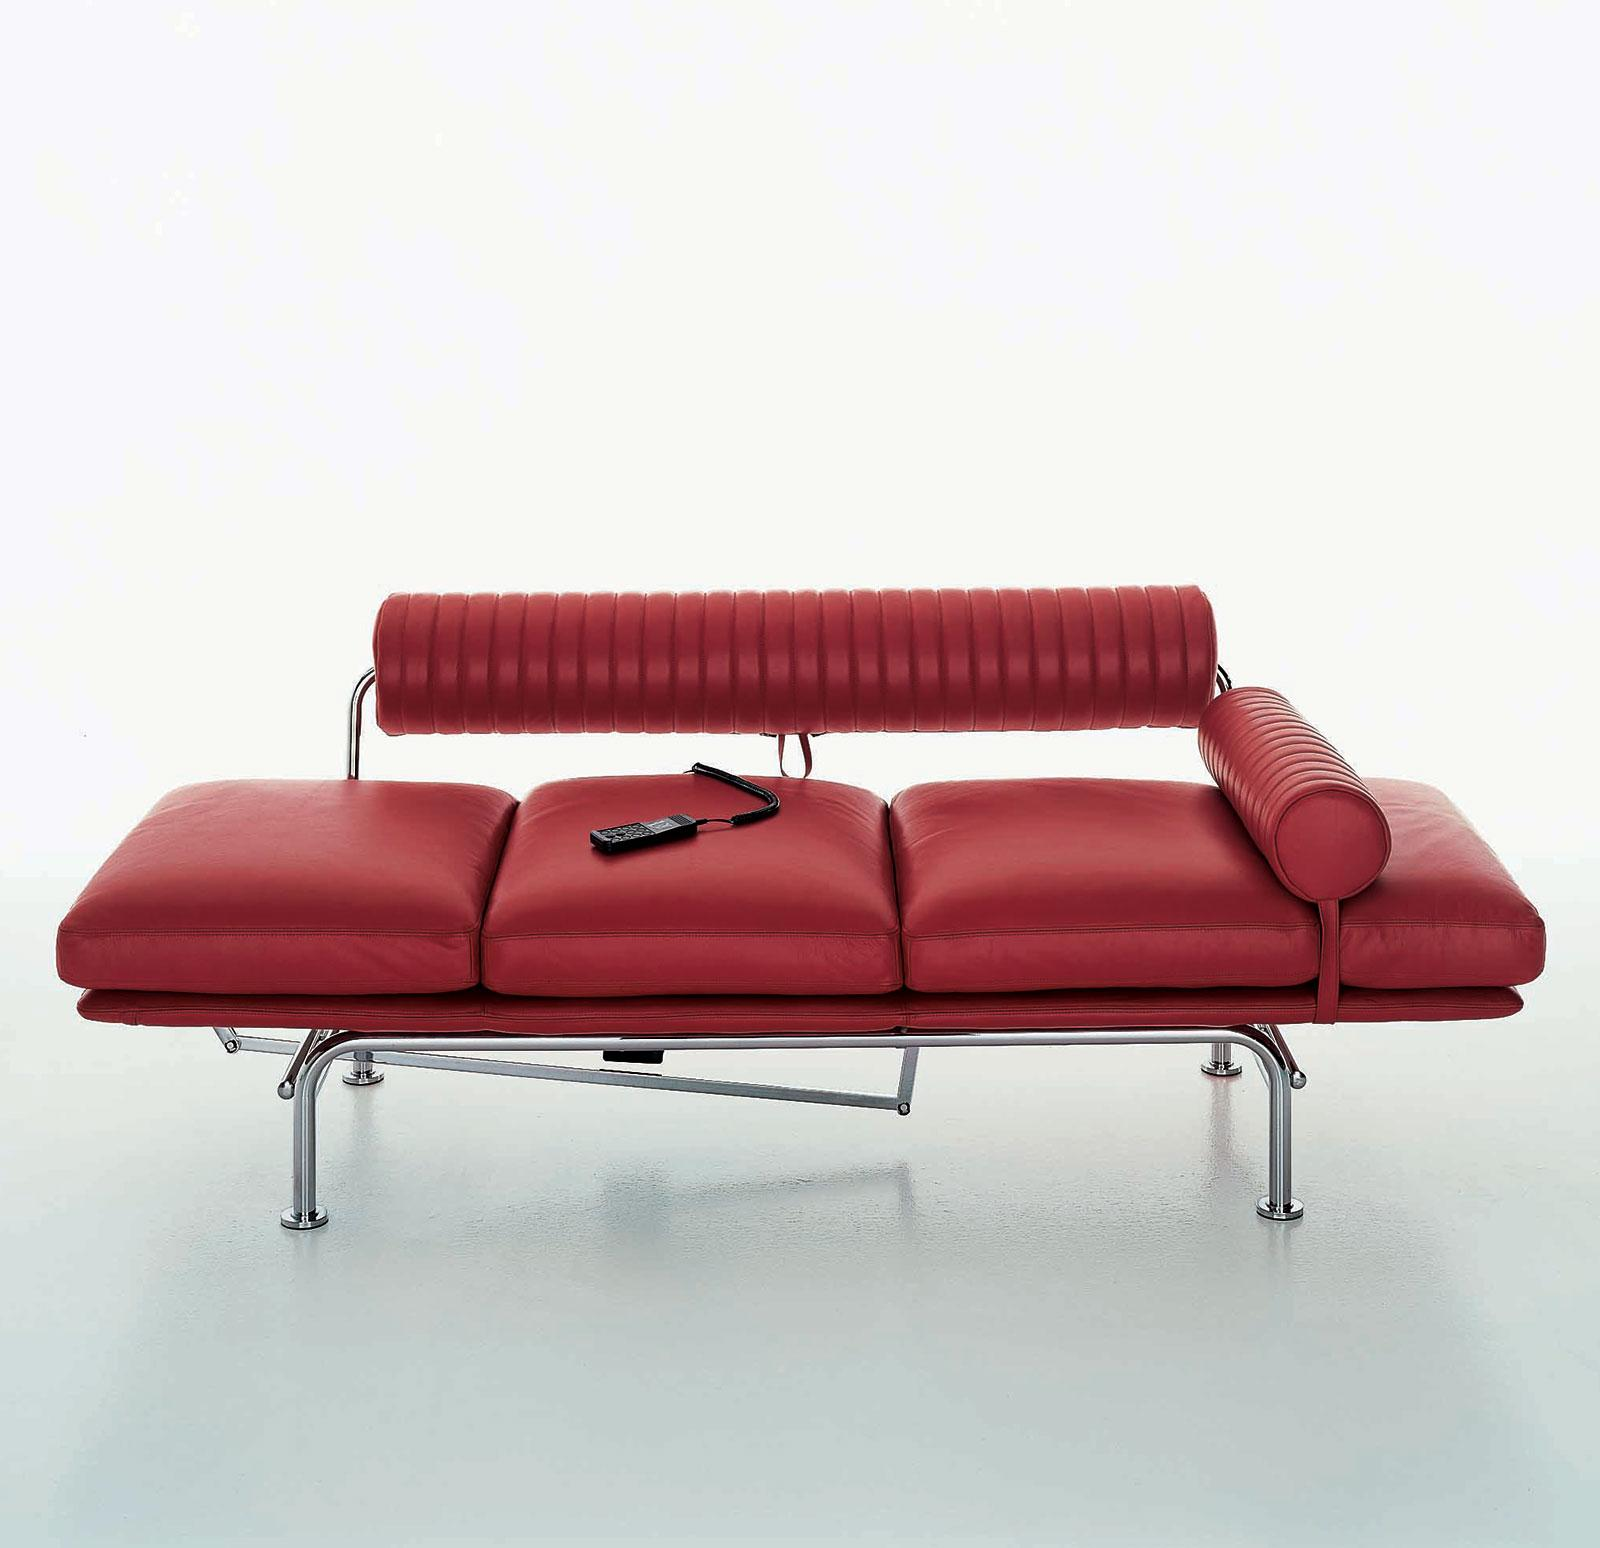 Up down chaise longue de luxe en cuir vente en ligne for Chaise longue design cuir